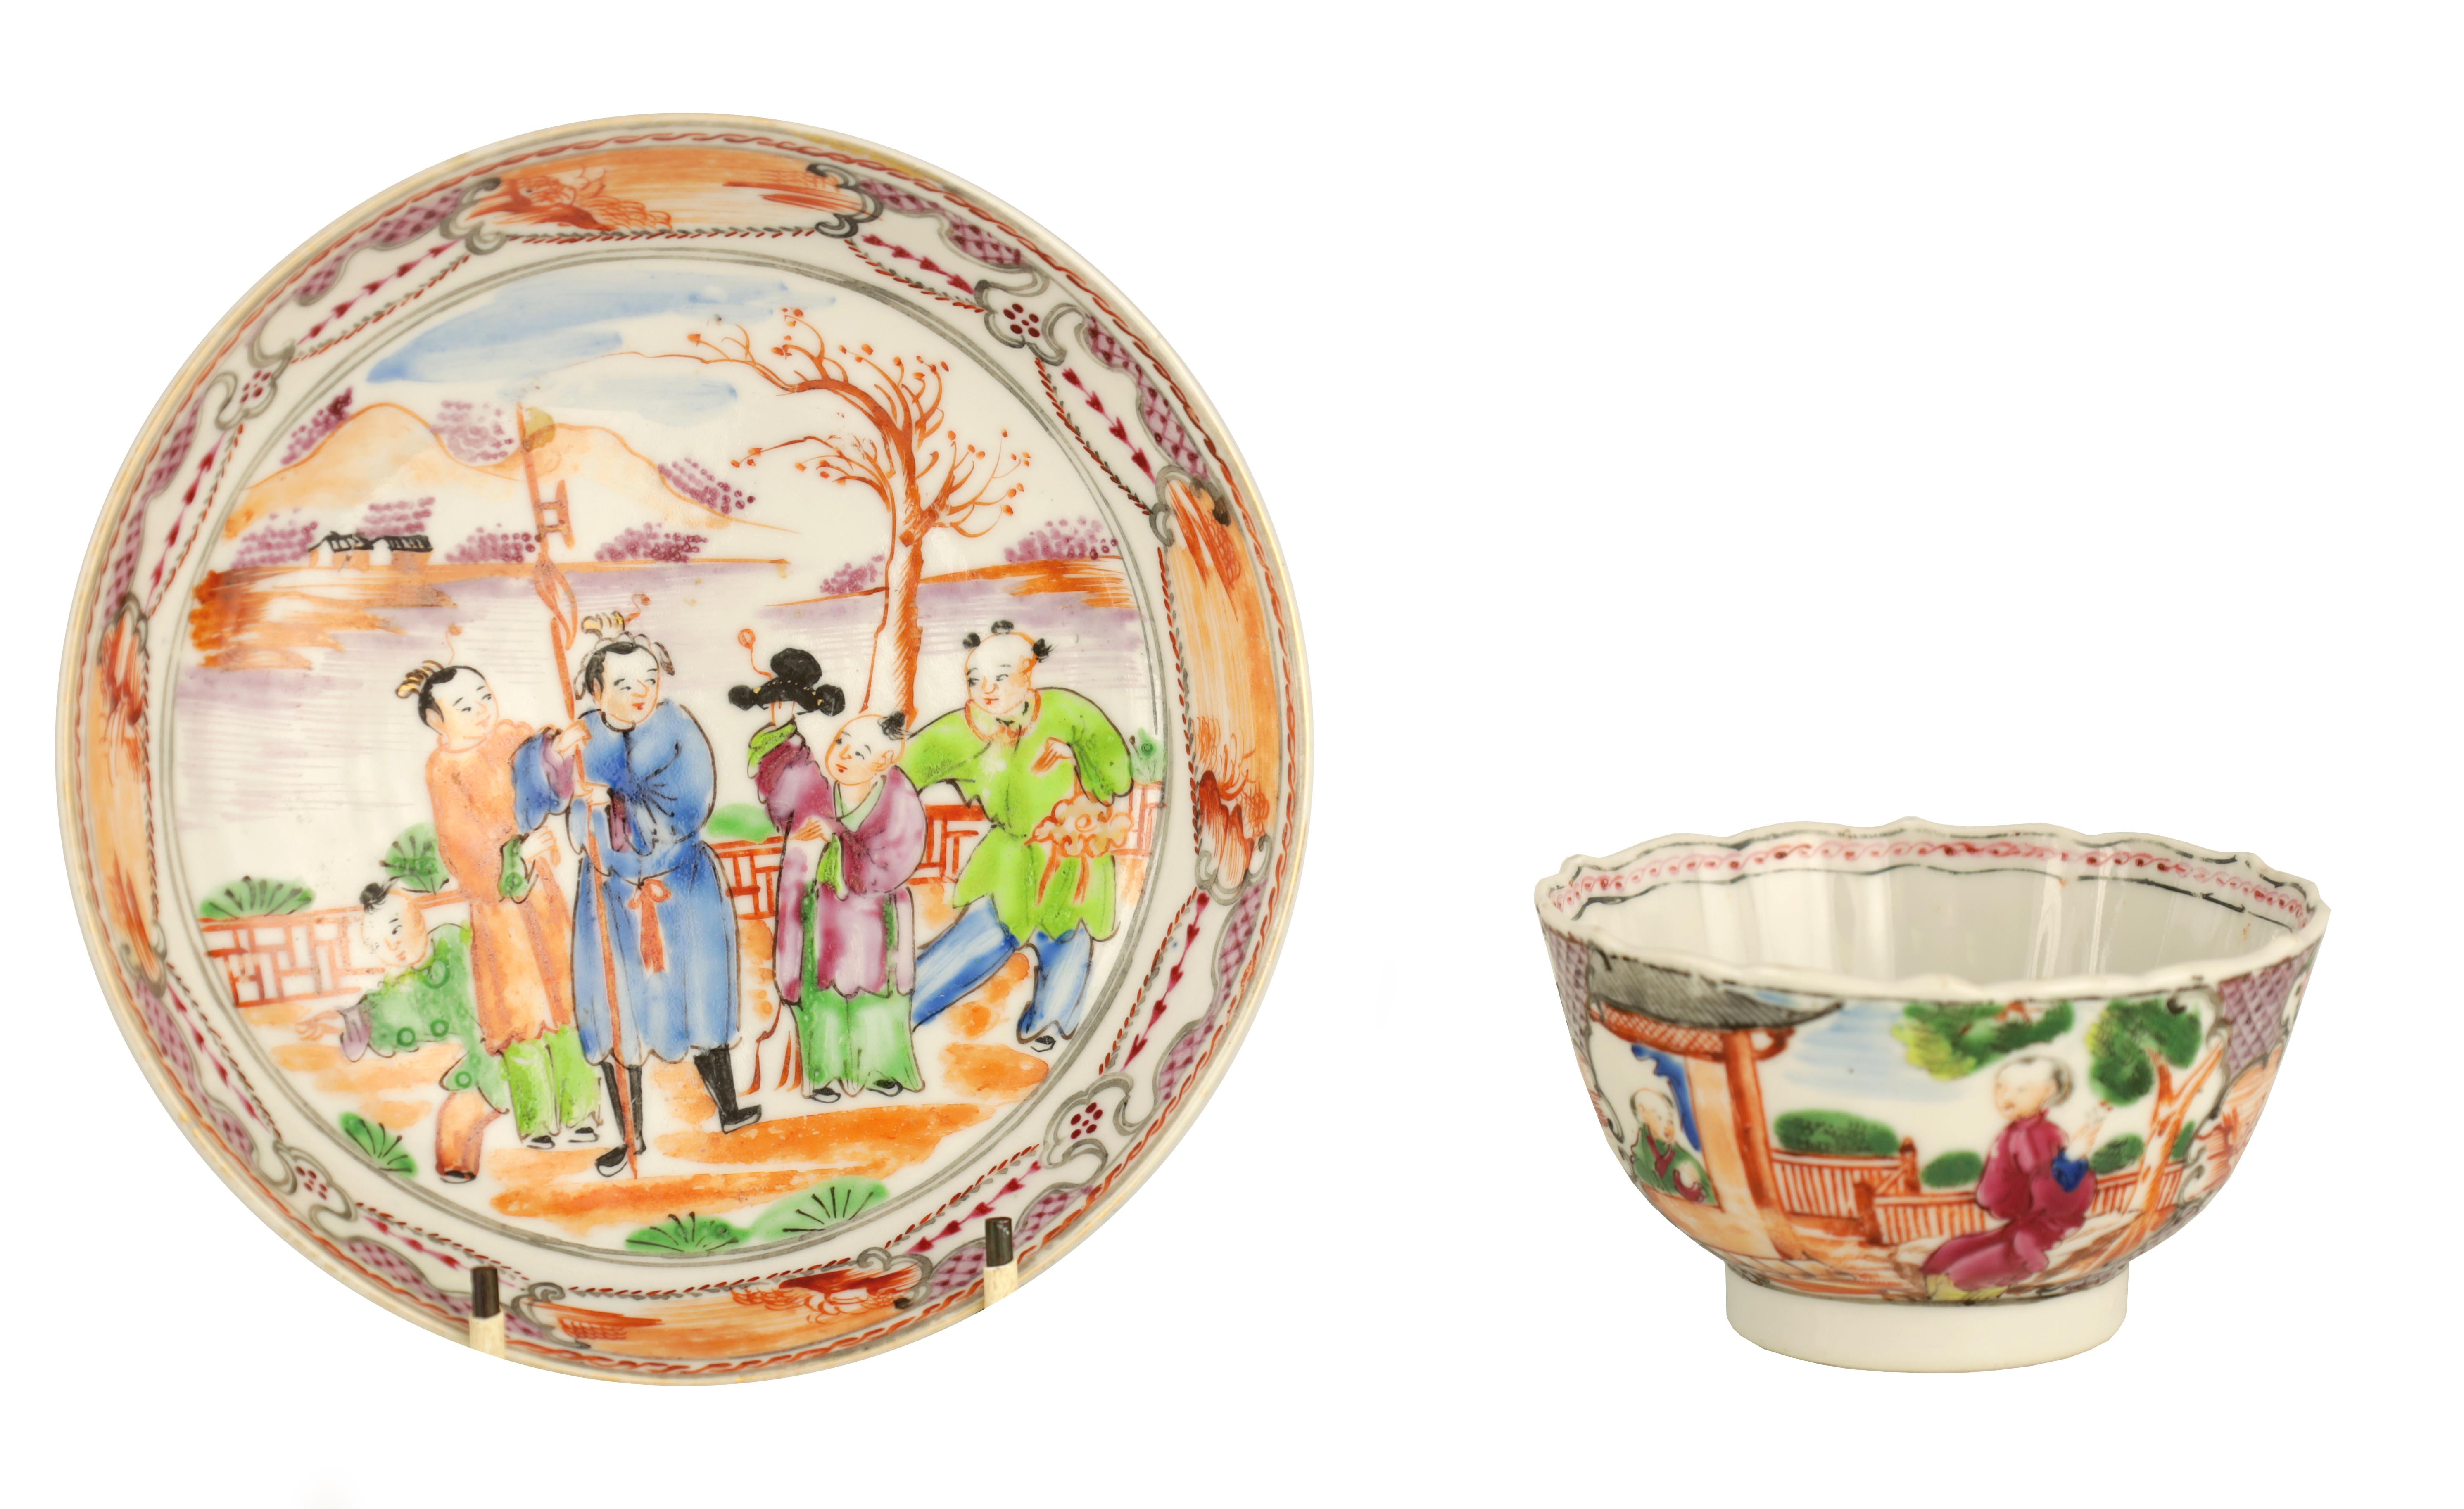 AN EARLY 19TH CENTURY NEW HALL PORCELAIN TEA CUP AND SAUCER decorated in 'The Boy in the Window'